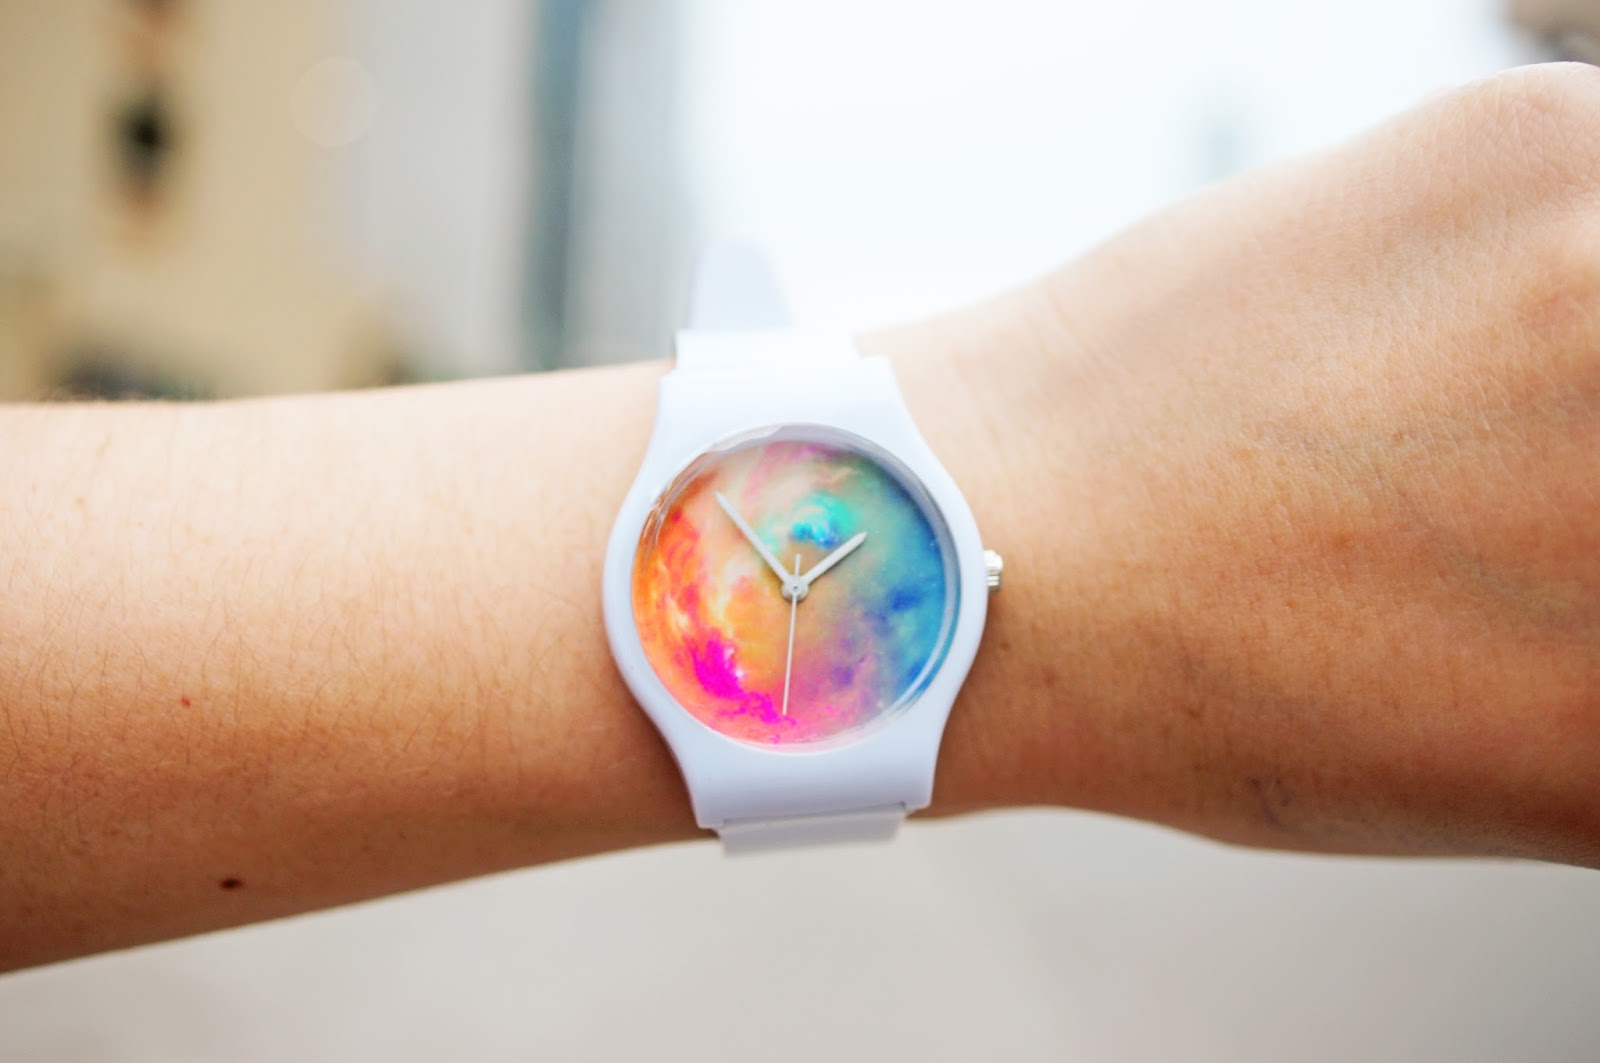 Super cute Galaxy watch!